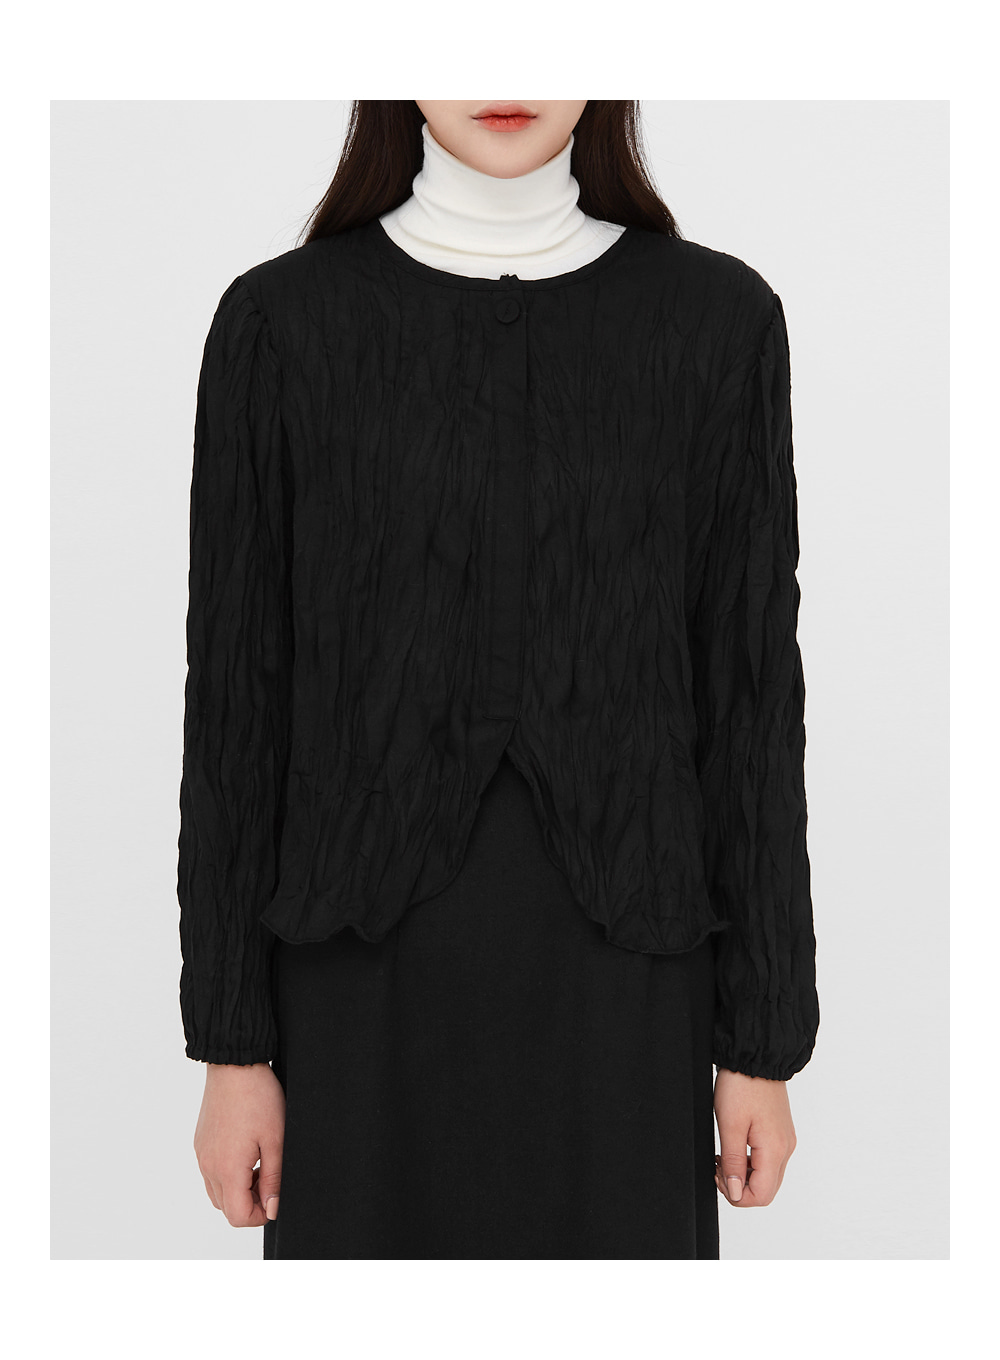 ruffled soft texture blouse